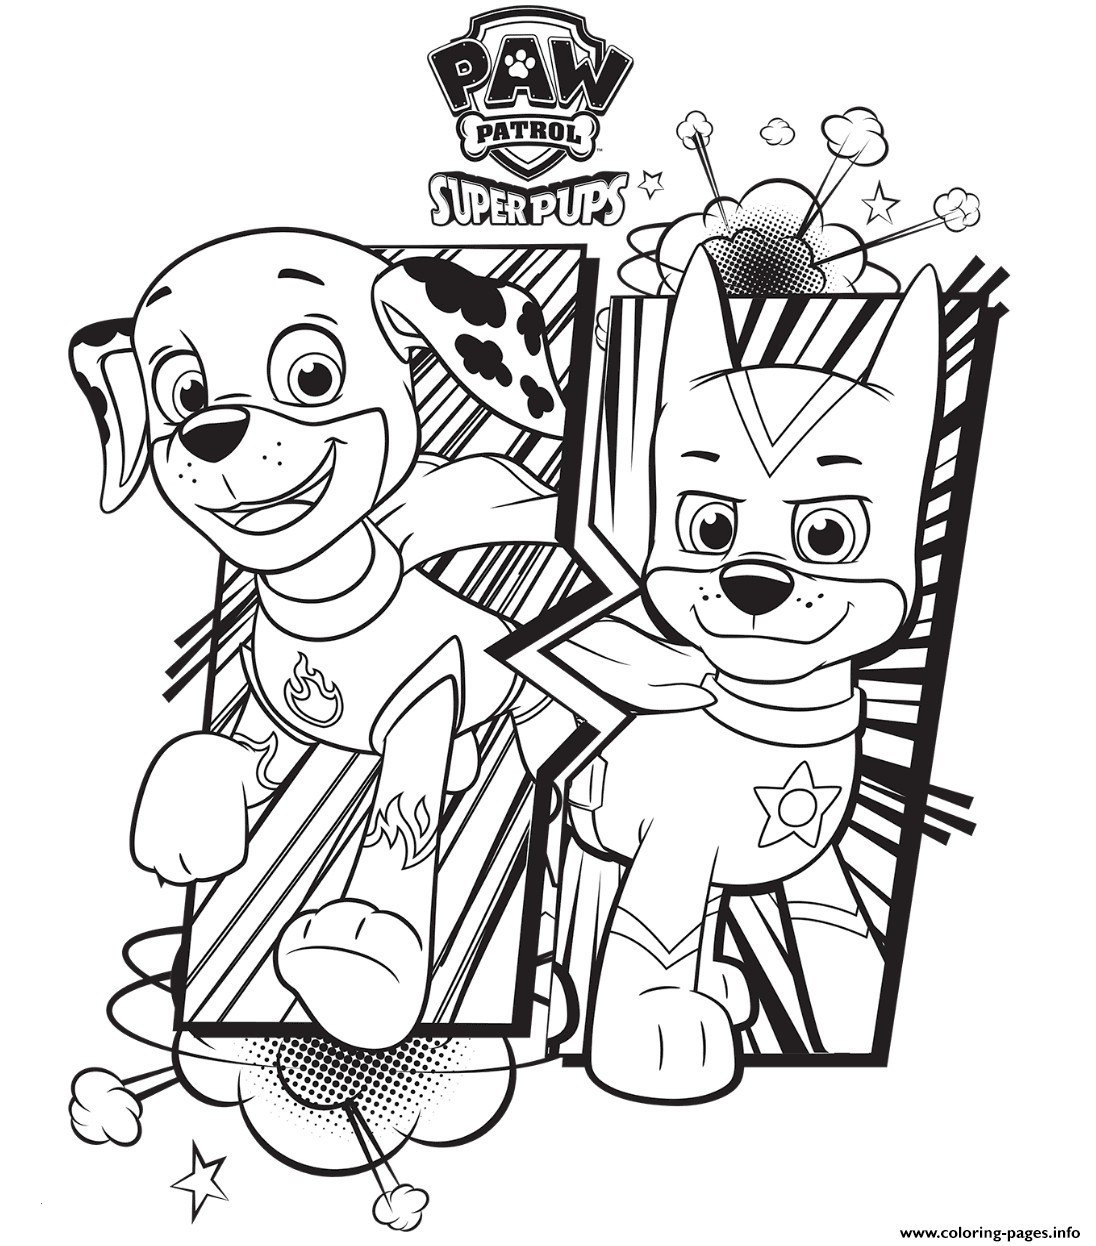 Rescue Bots Ausmalbilder Einzigartig Paw Patrol Coloring Page New S Coloring Pages astronauts Galerie